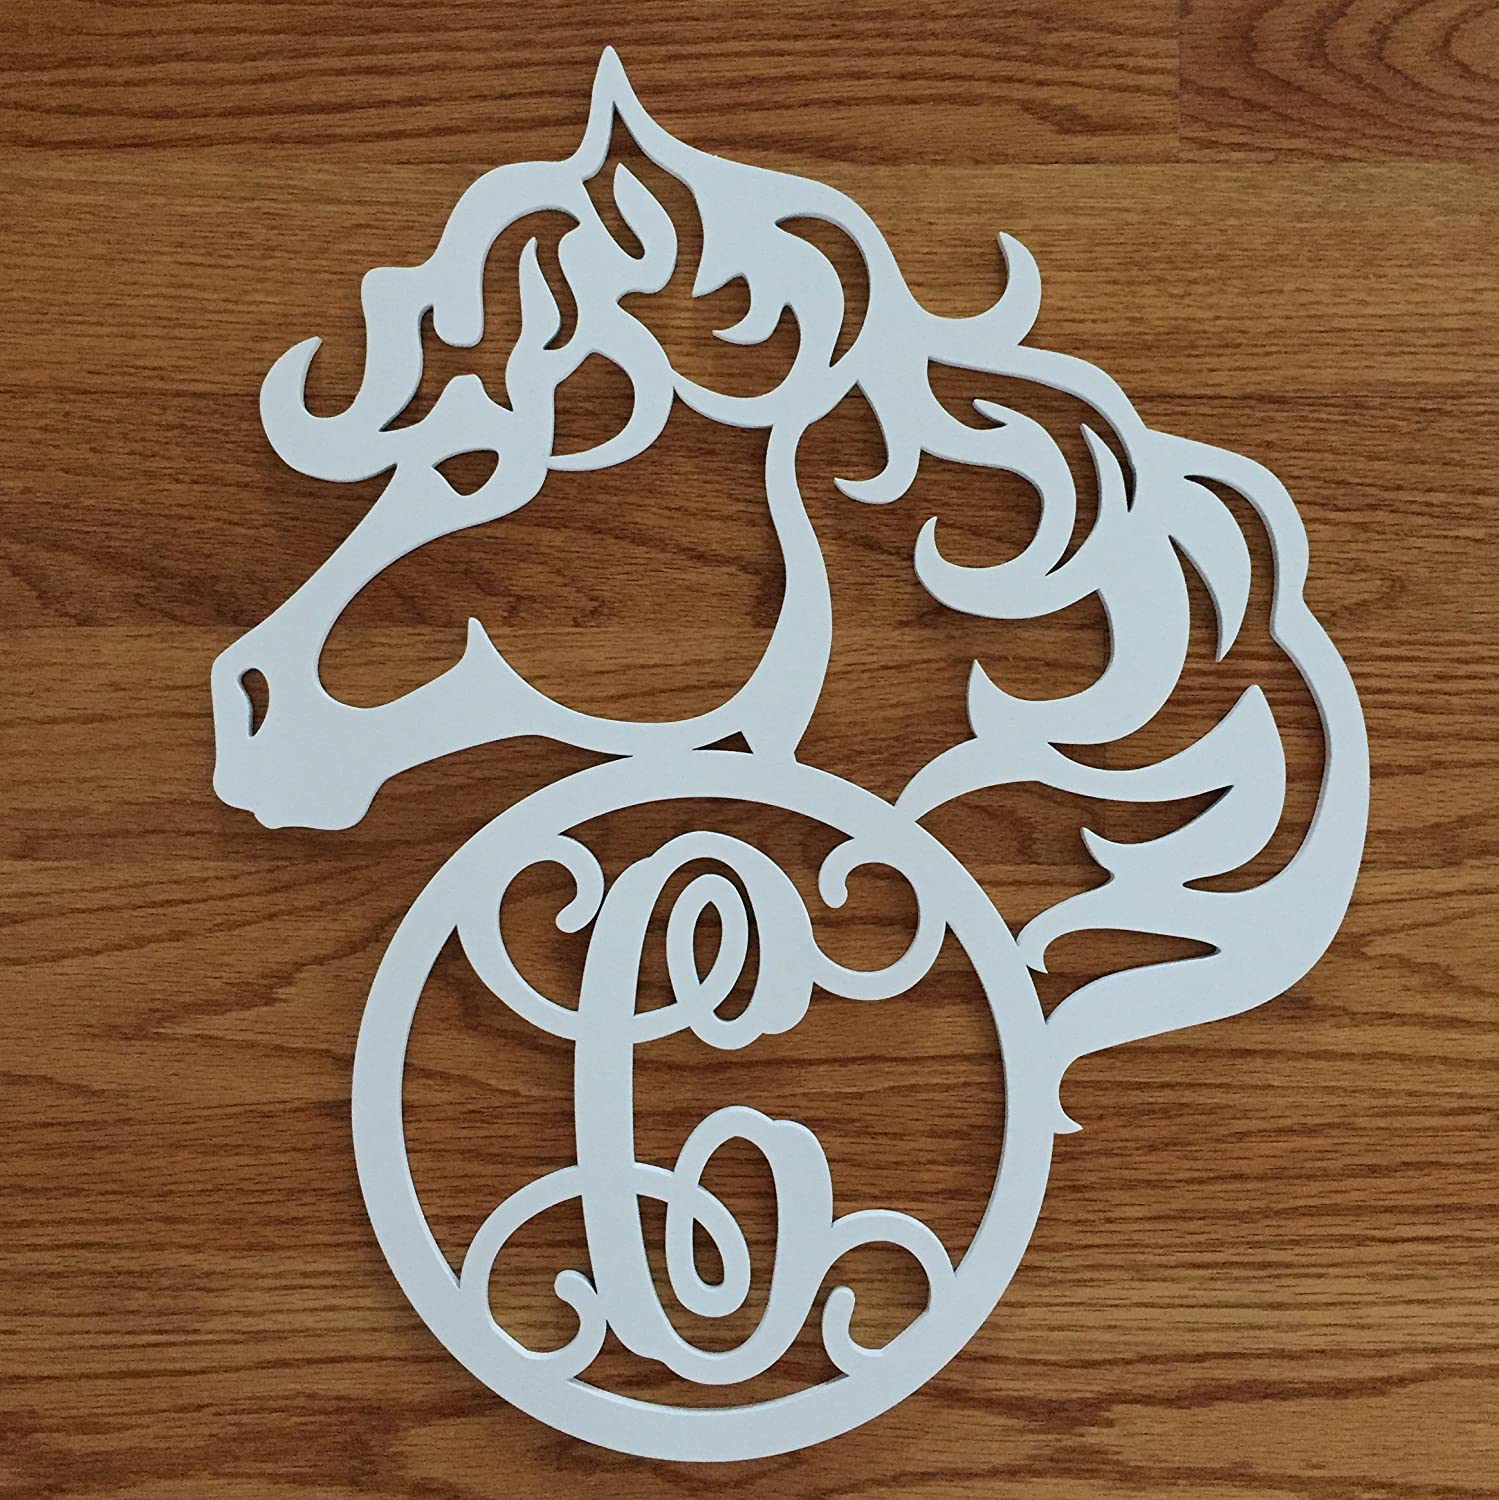 Monogram Horse Door Hanger - Horse Wreath - Horse Door Hanging - Country Door Hanger - Horse Initial Wreath - Farm Door Hanger - Horse Cutout